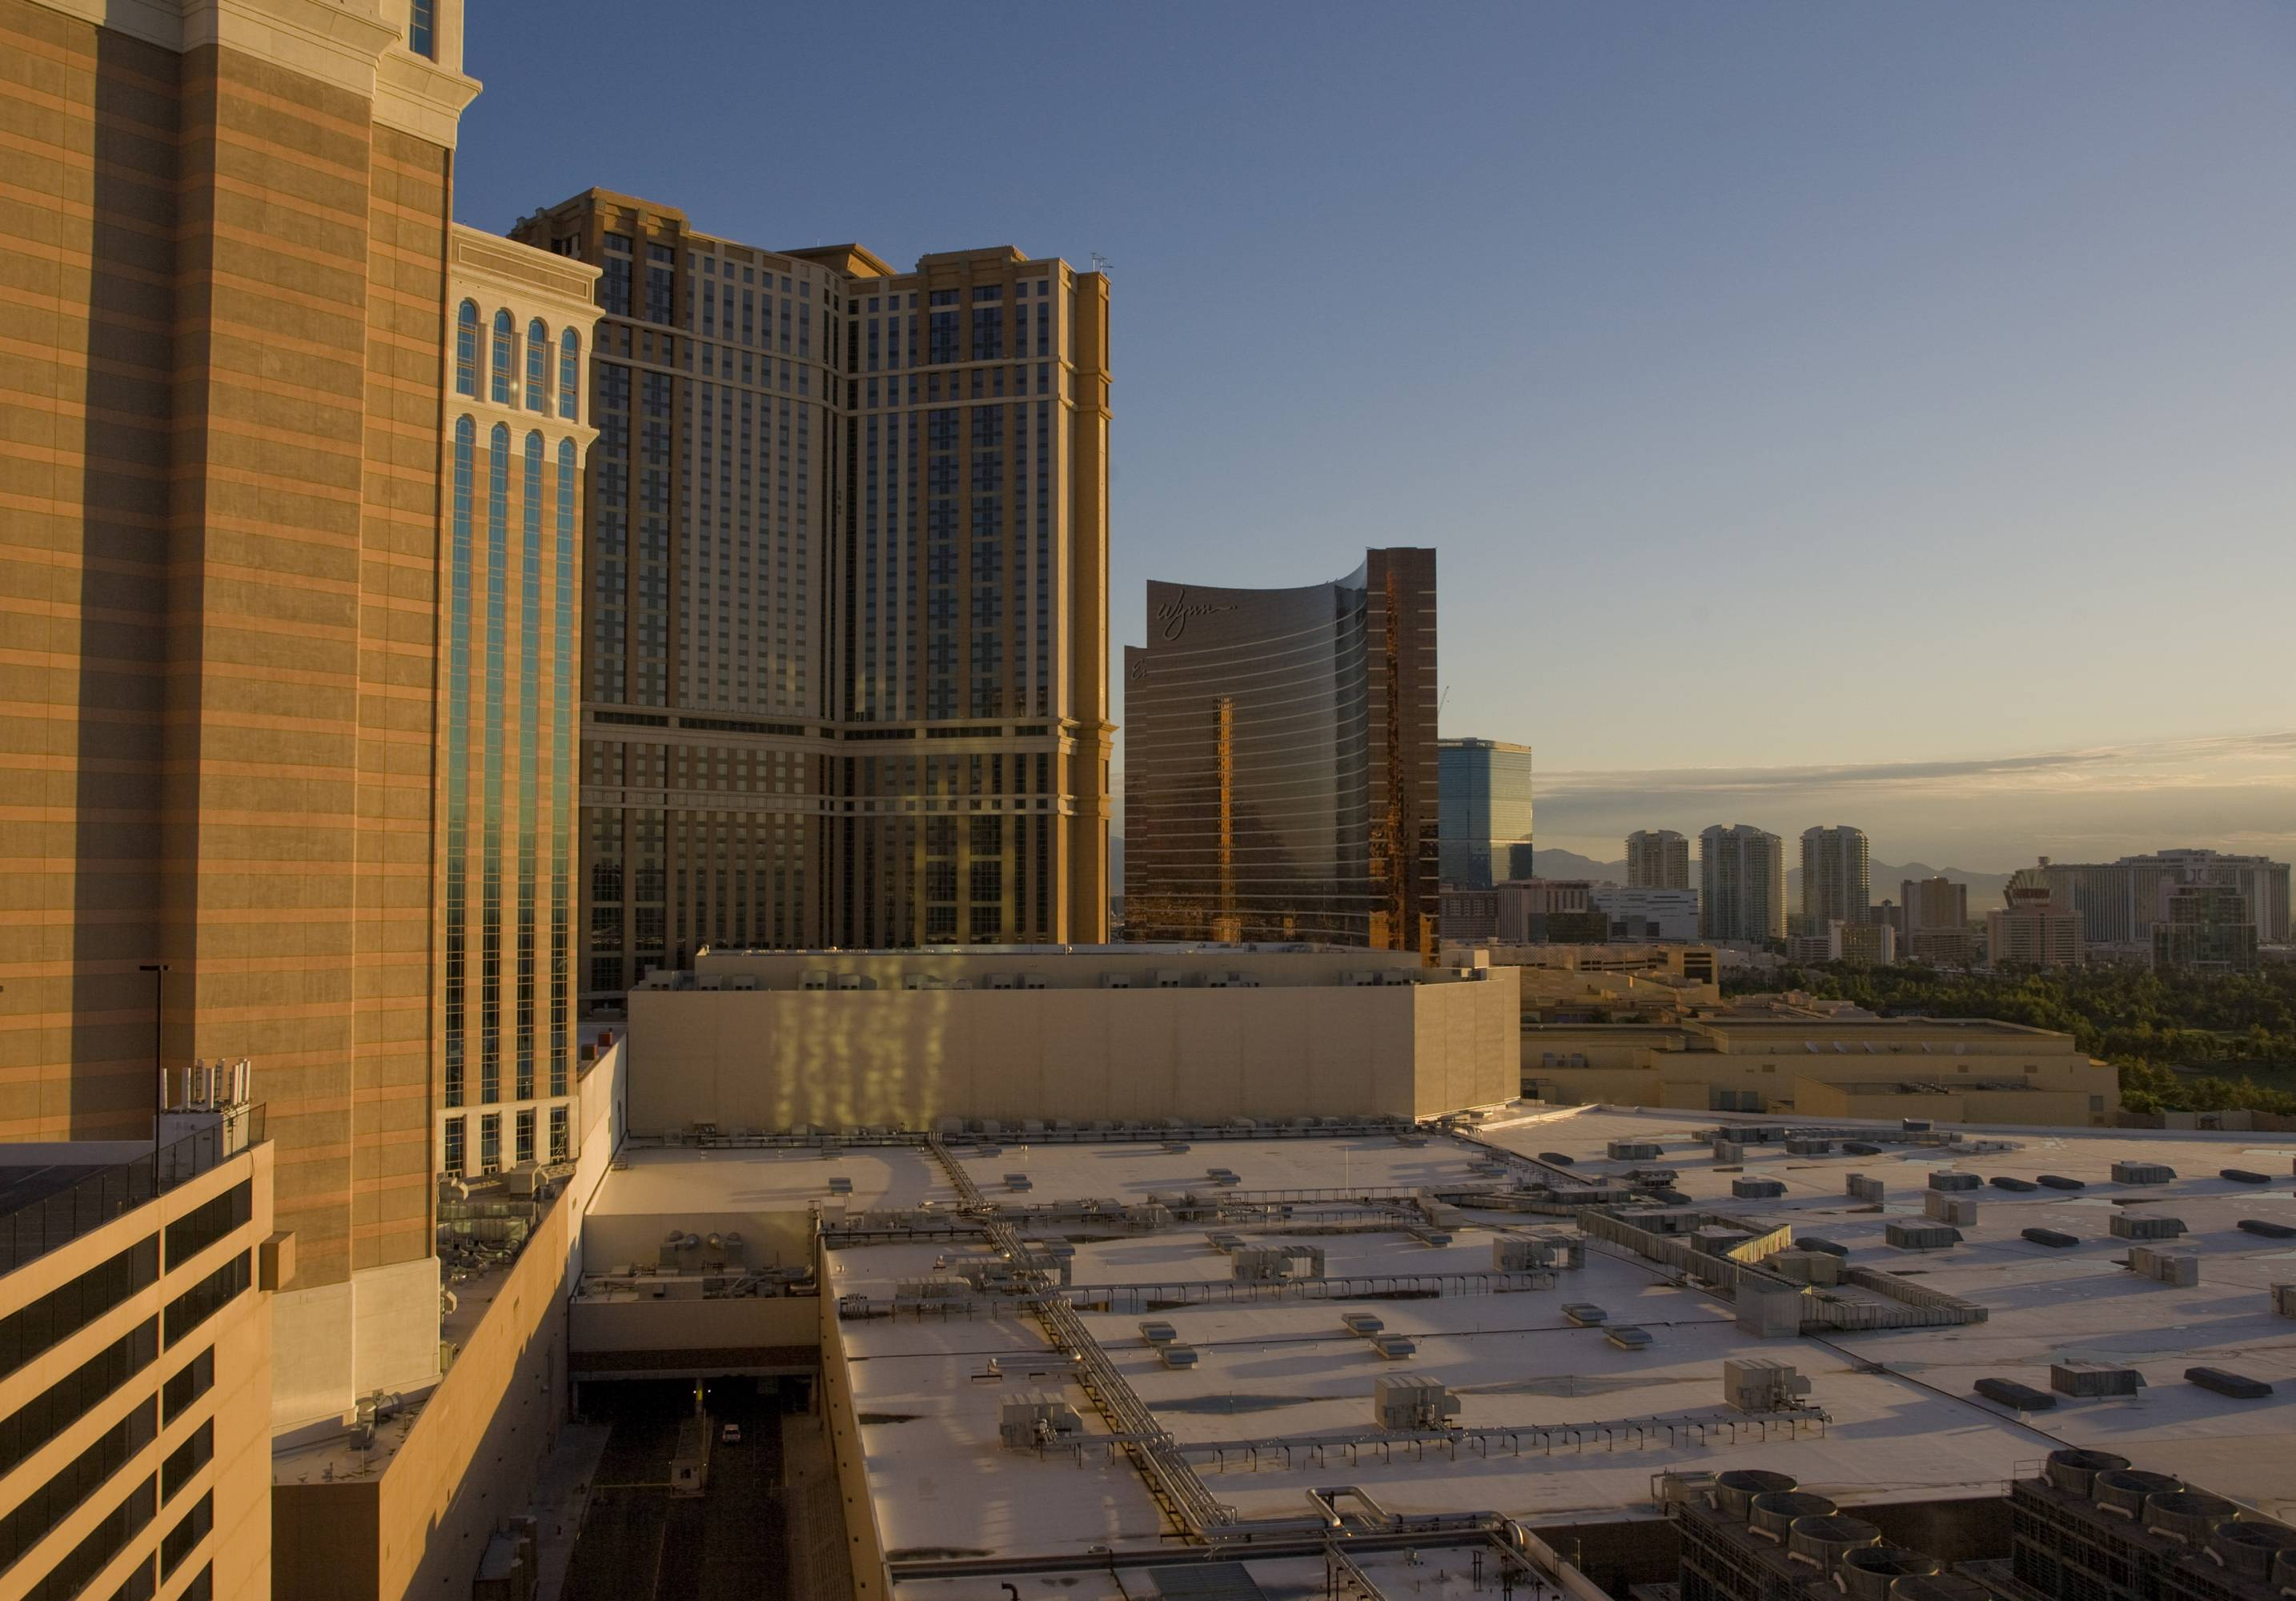 Economic Downturn Continues in Las Vegas